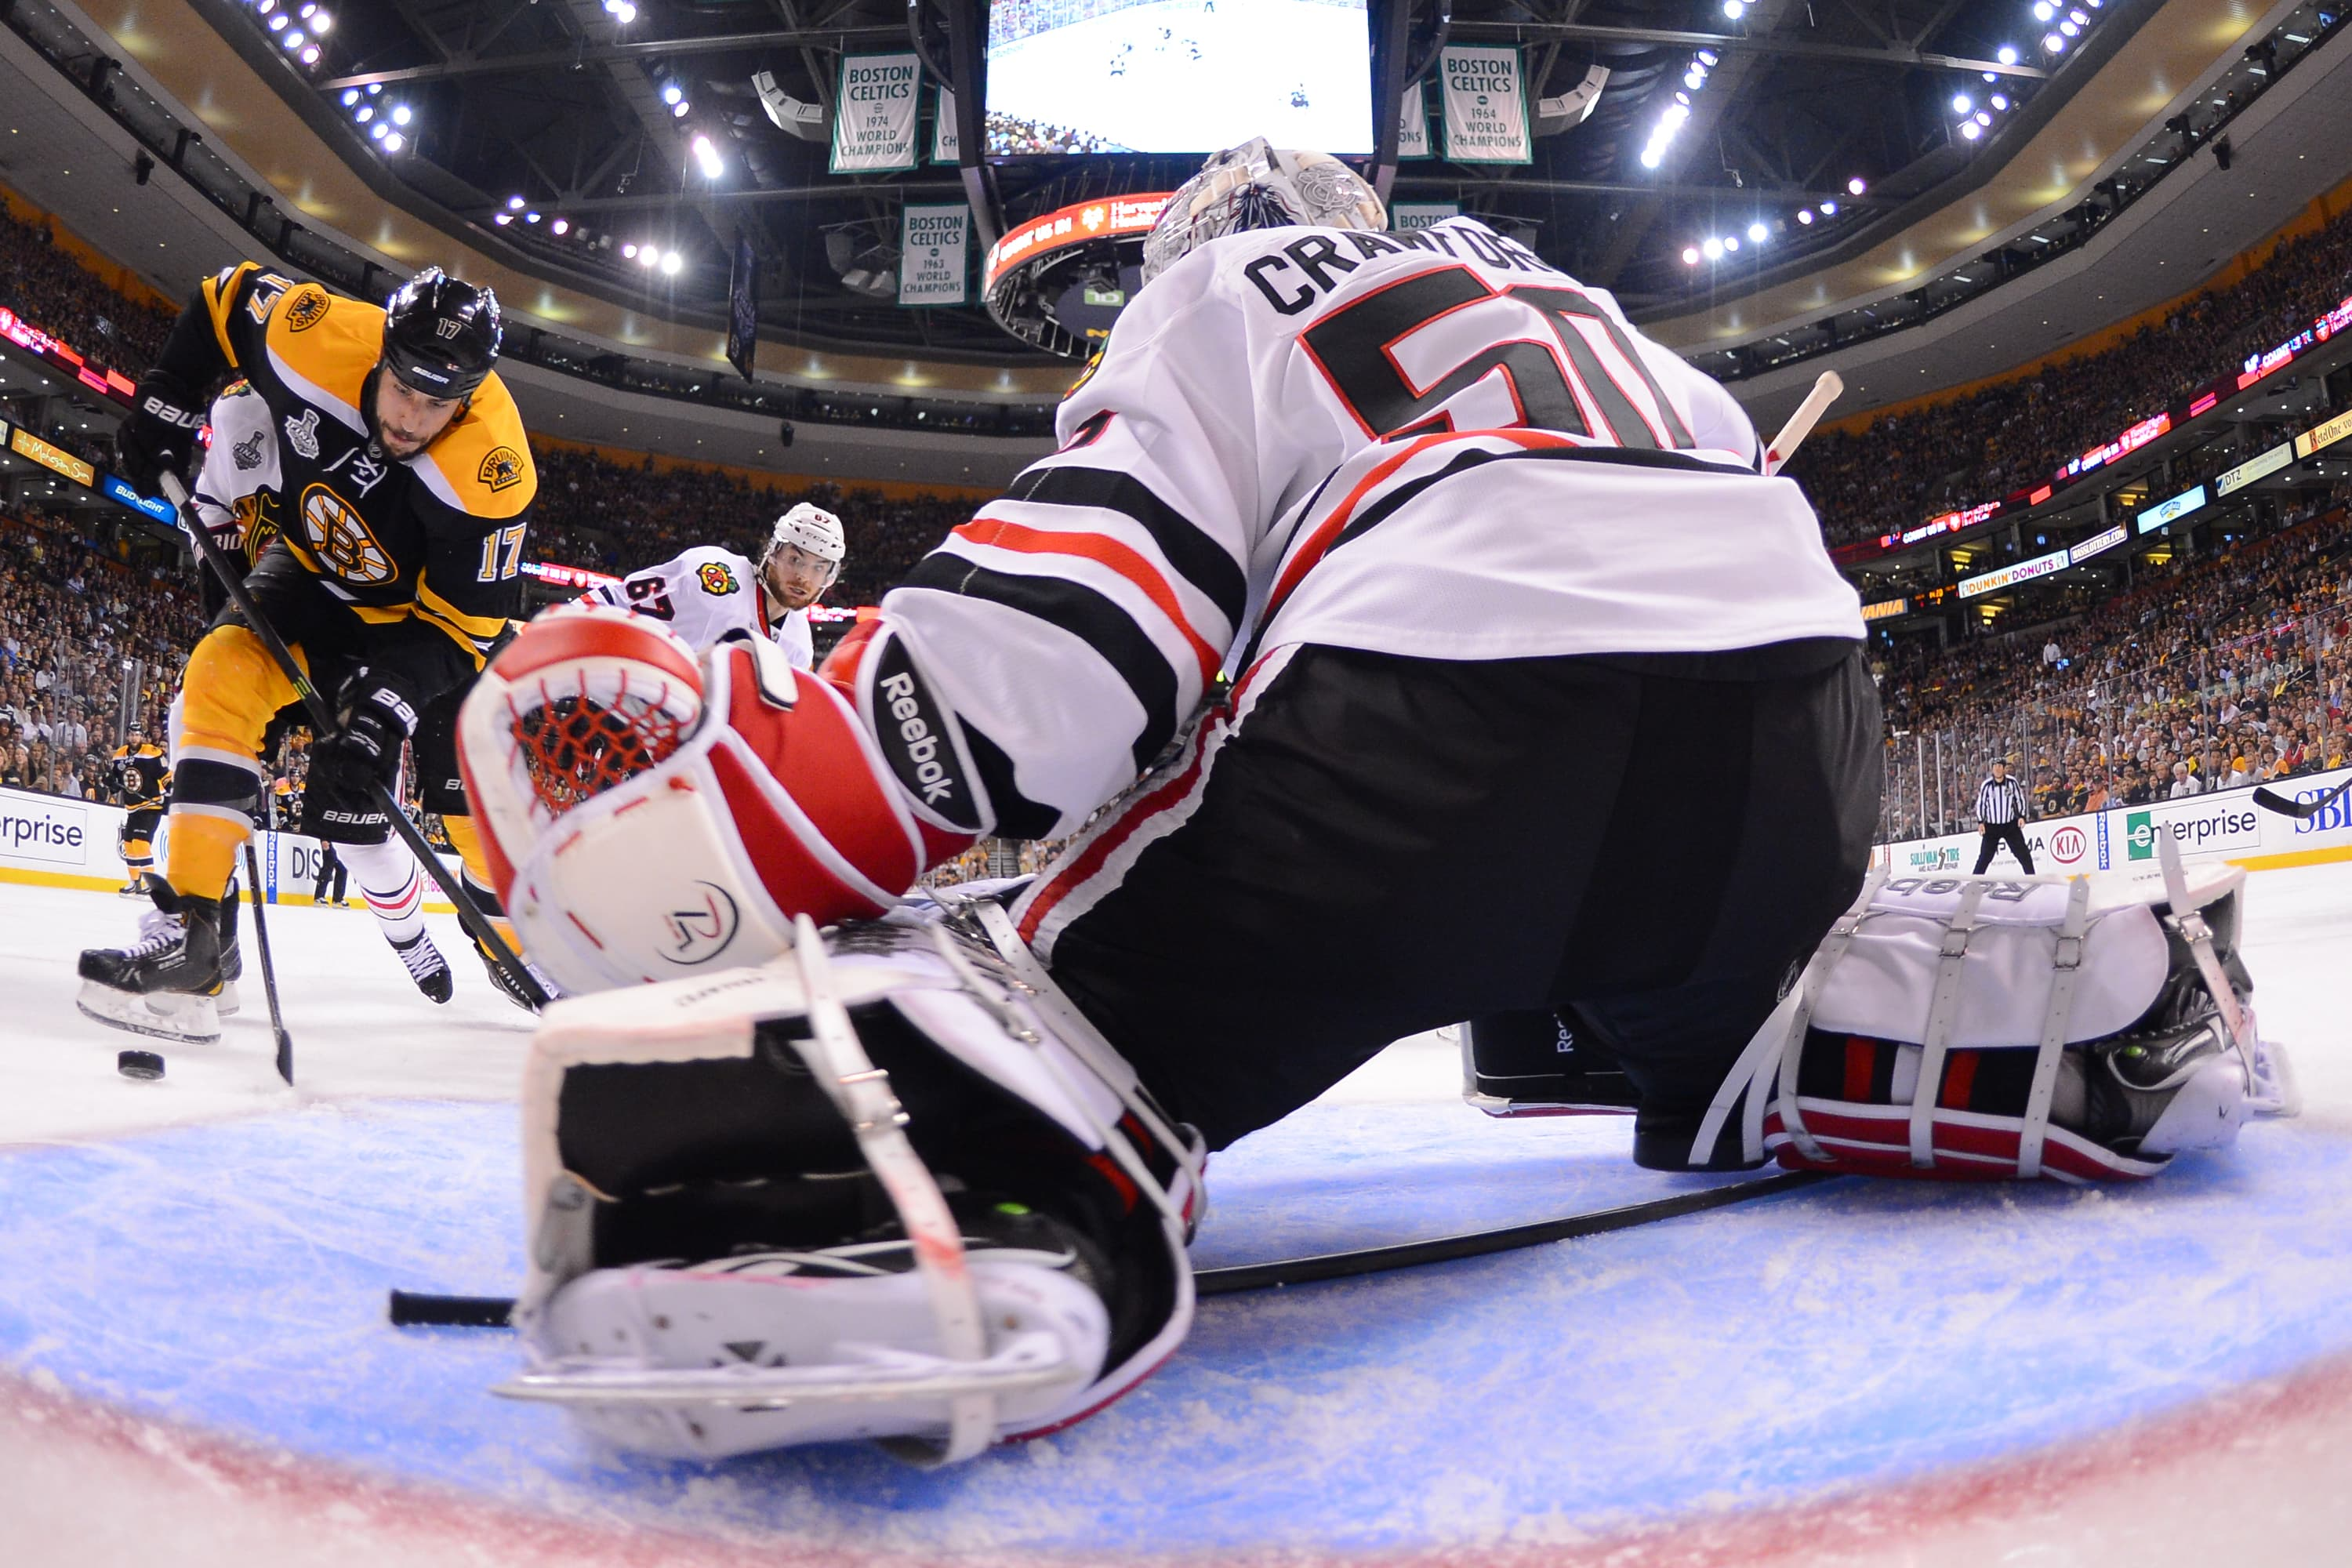 Nhl Tv Deal National Hockey League Looks Poised For Major Breakout